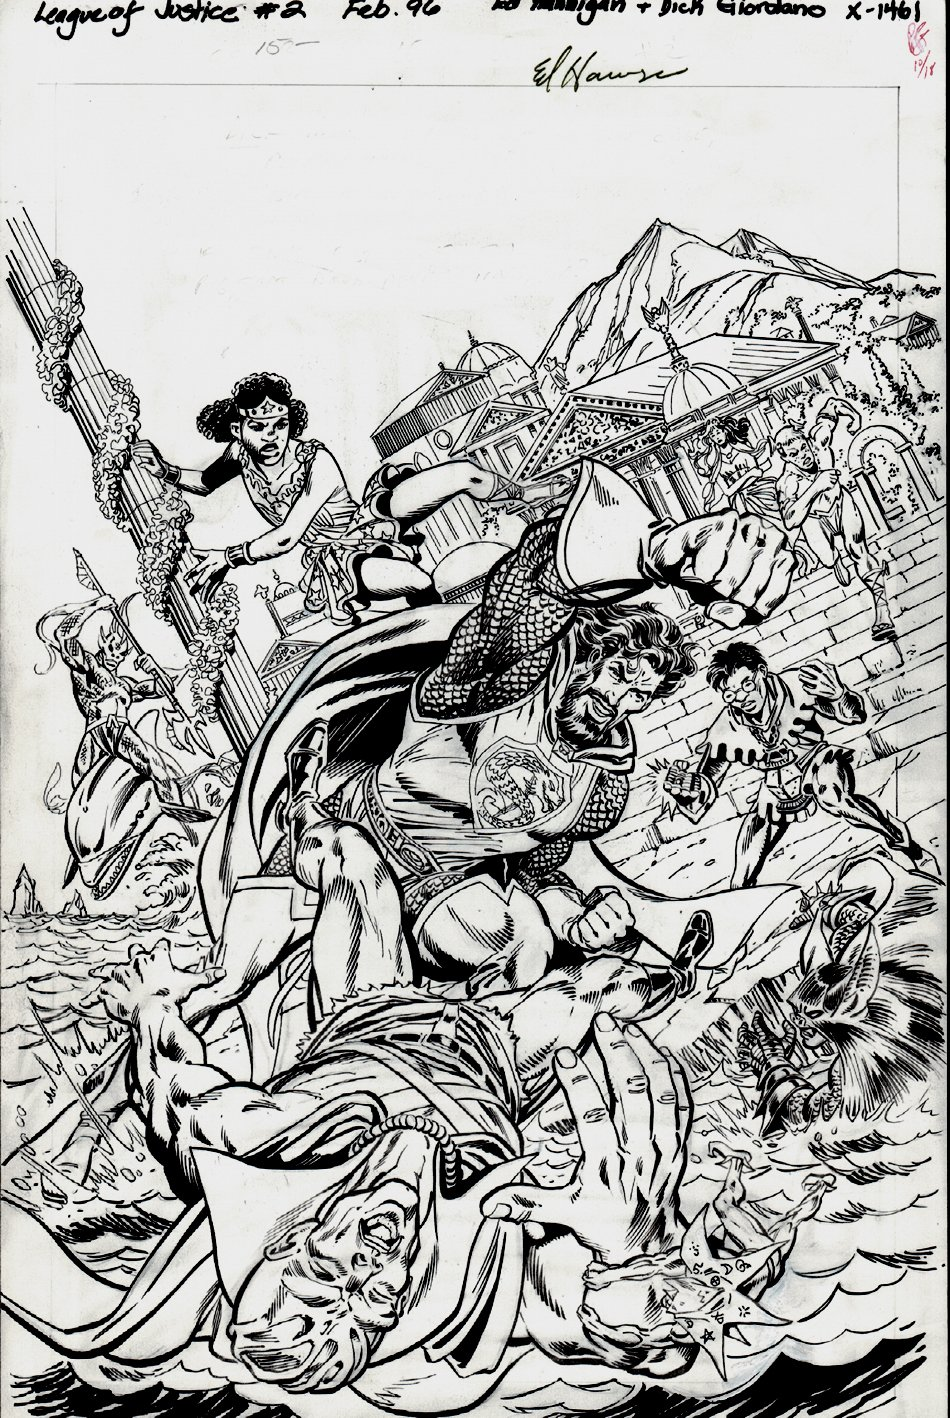 League of Justice #2 Cover (1996)